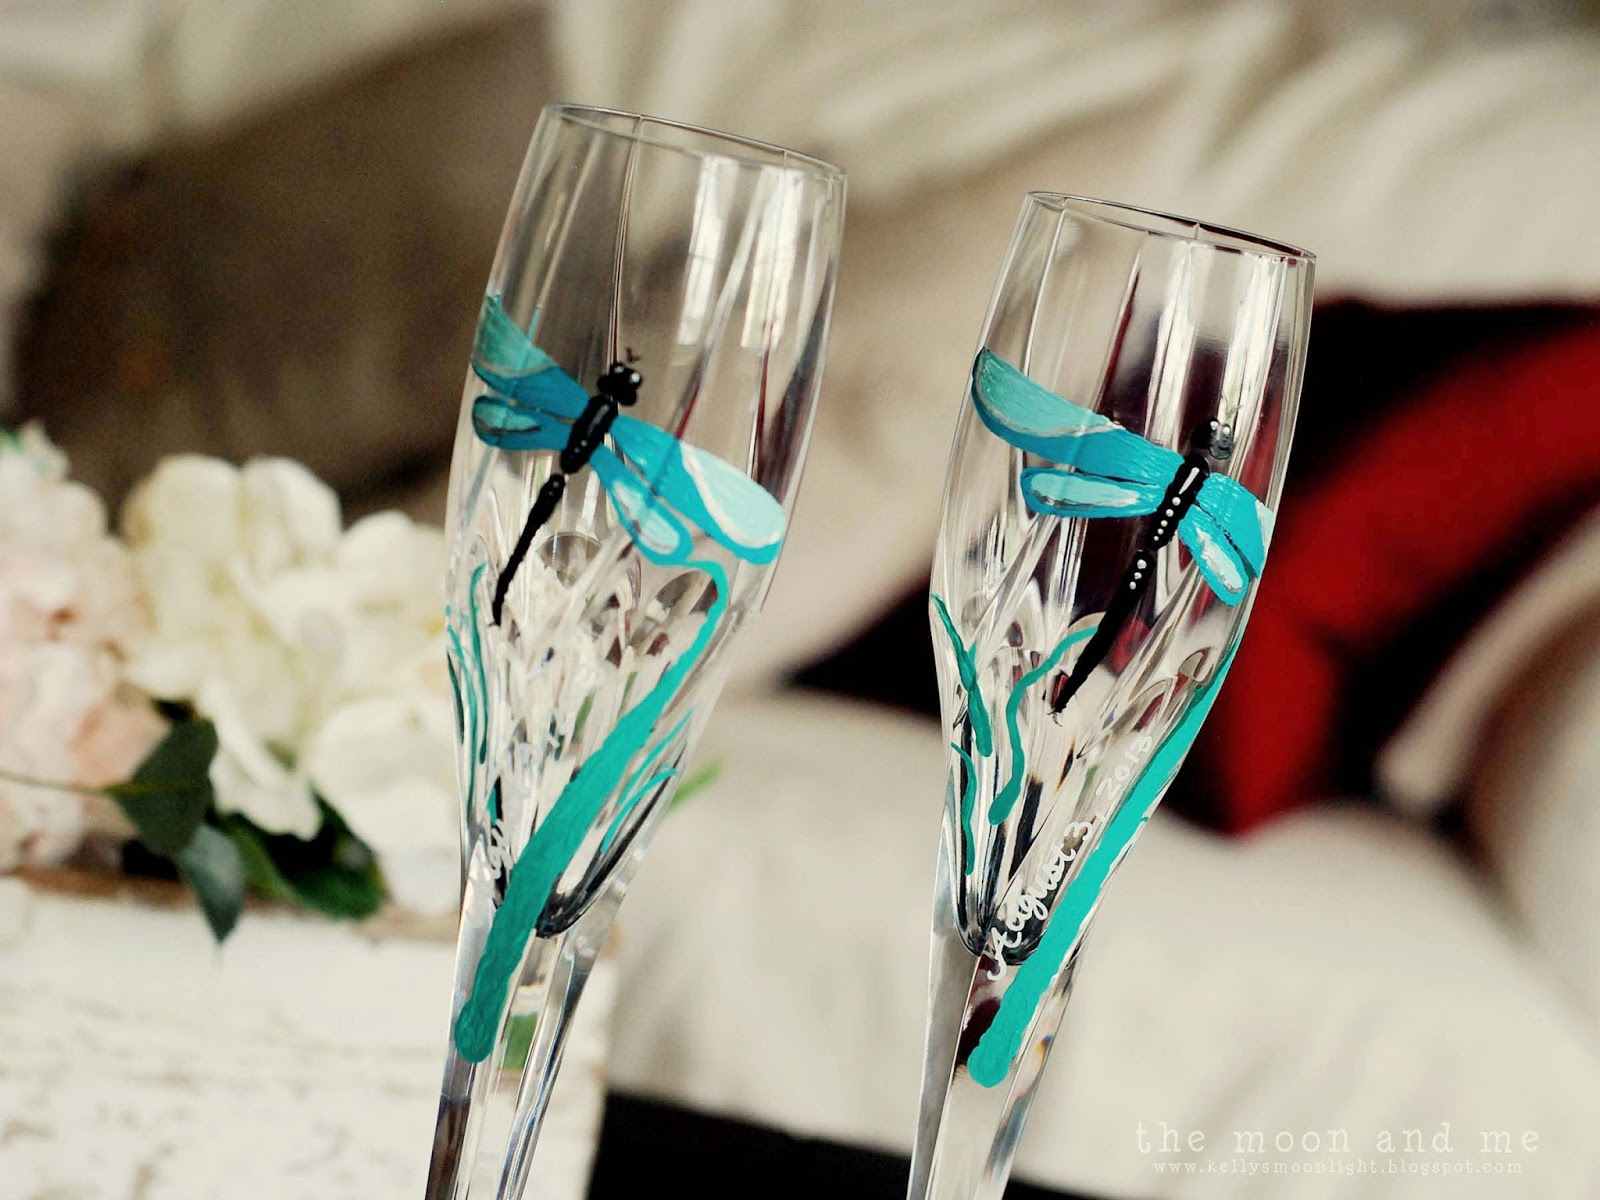 The Moon and Me  Custom Painted Champagne Flutes